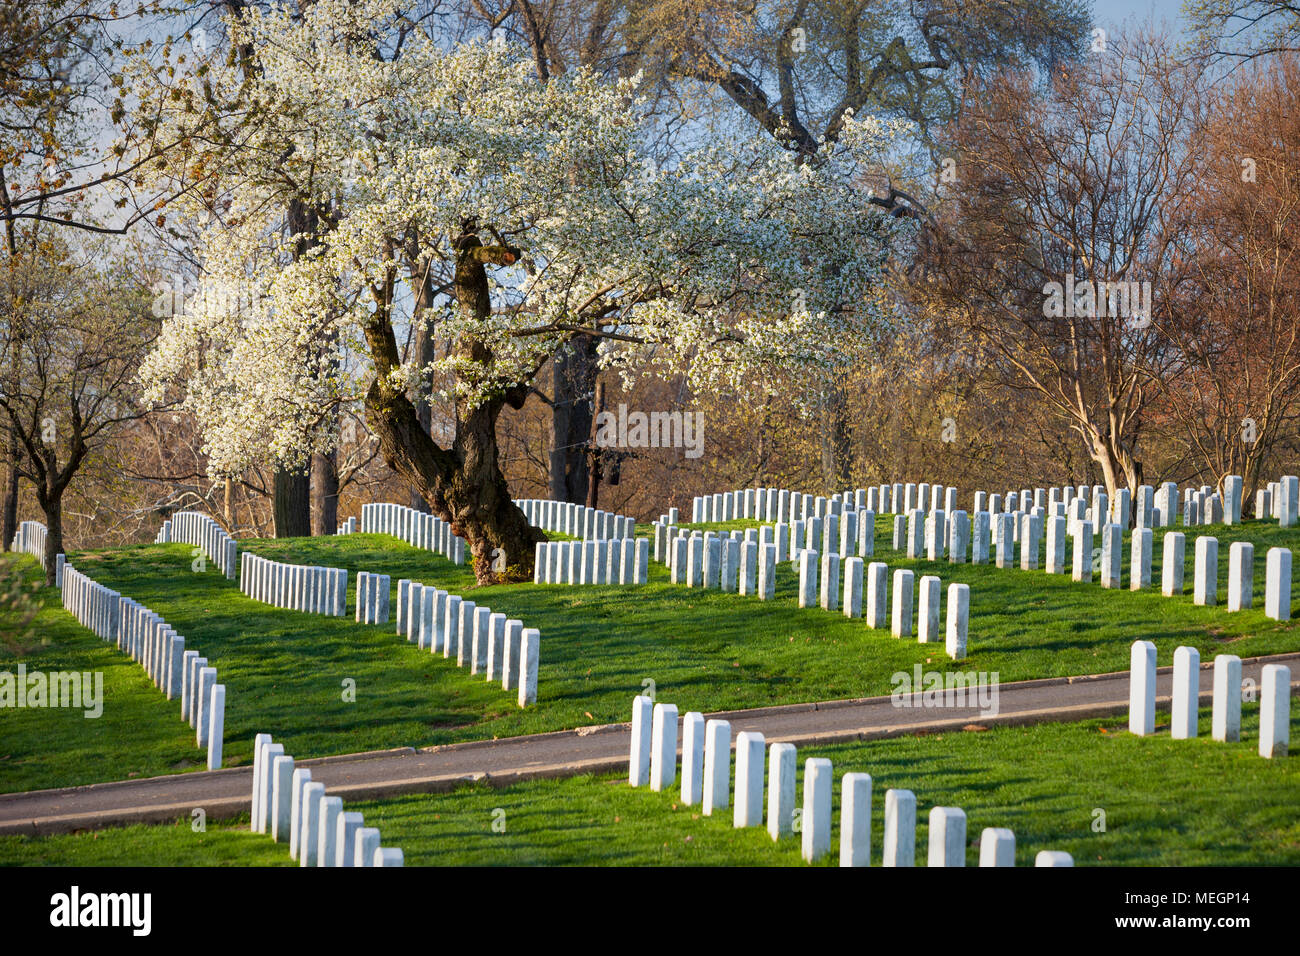 Blossoming Cherry Trees stand guard over rows of tombstones at Arlington National Cemetery, Arlington, Virginia, USA - Stock Image